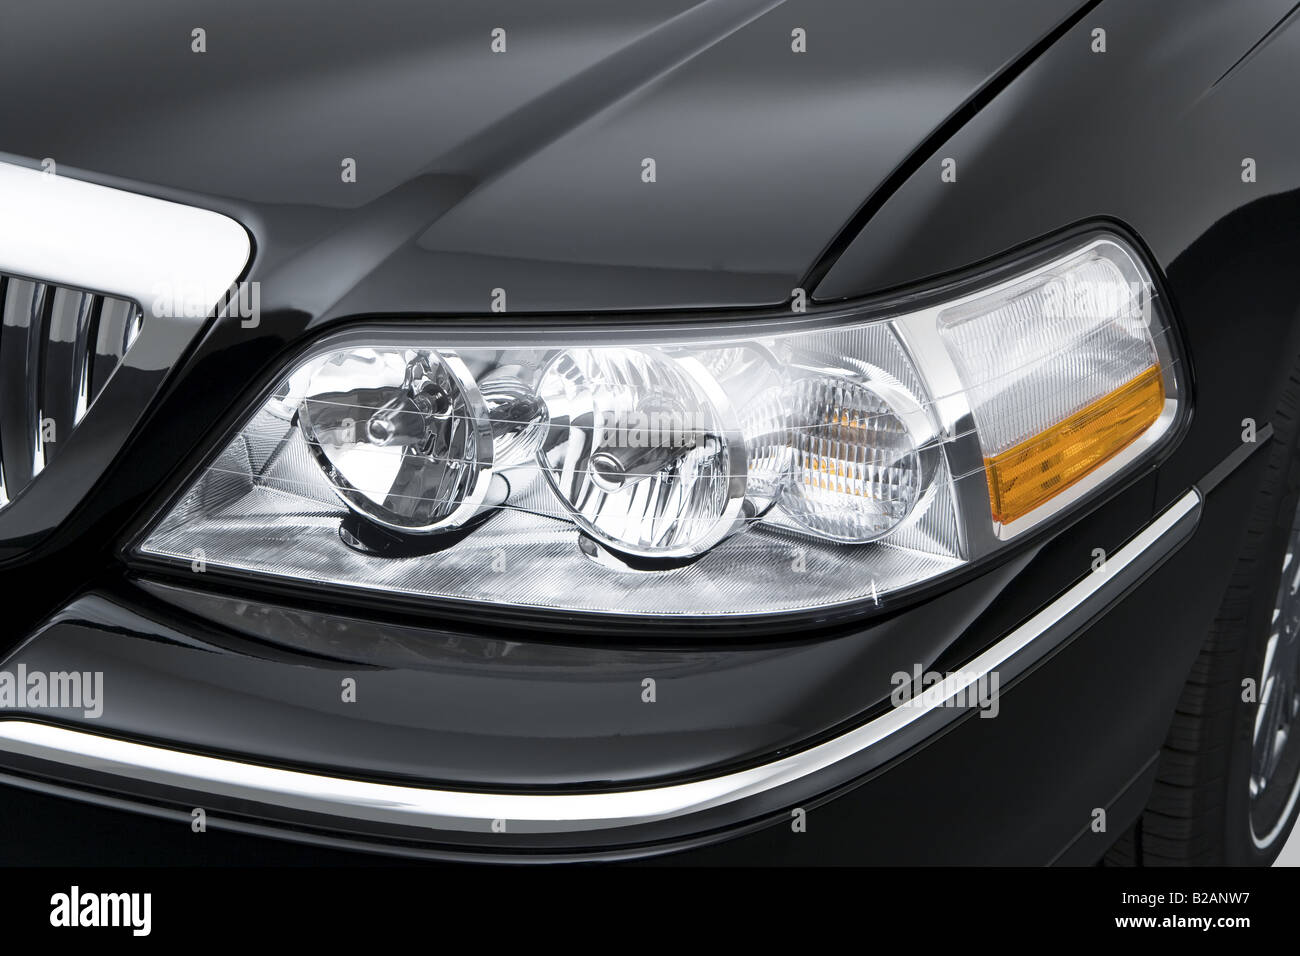 2008 Lincoln Town Car Signature Limited In Black Headlight Stock